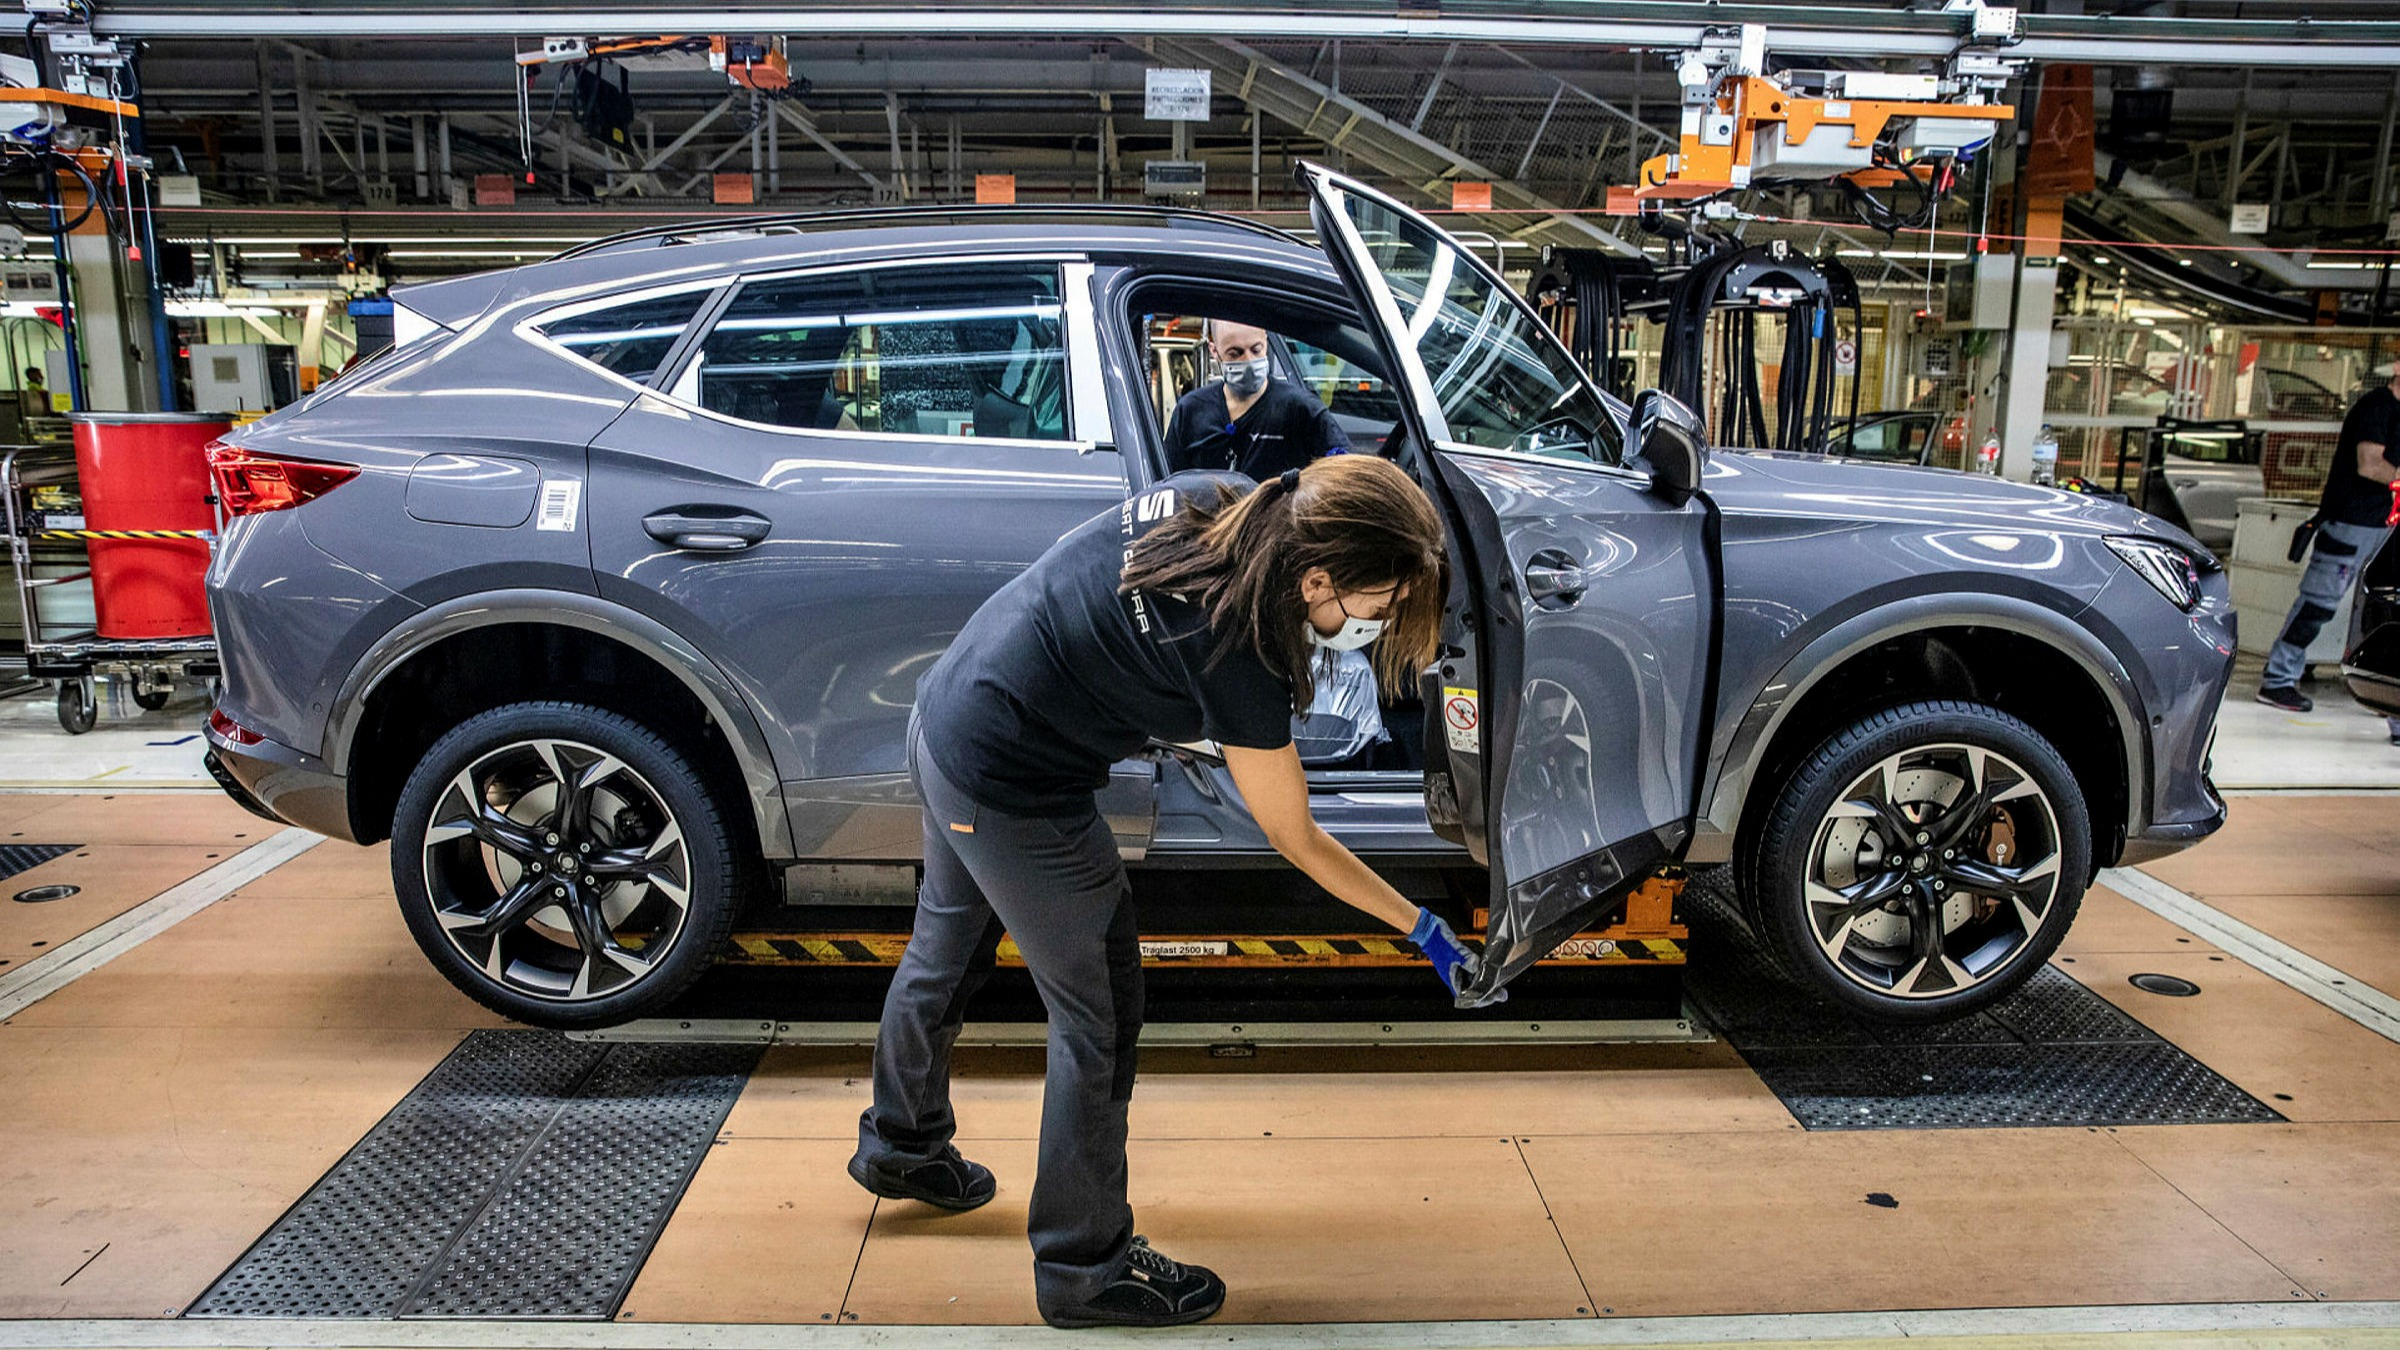 Spain's auto sector collides with Covid